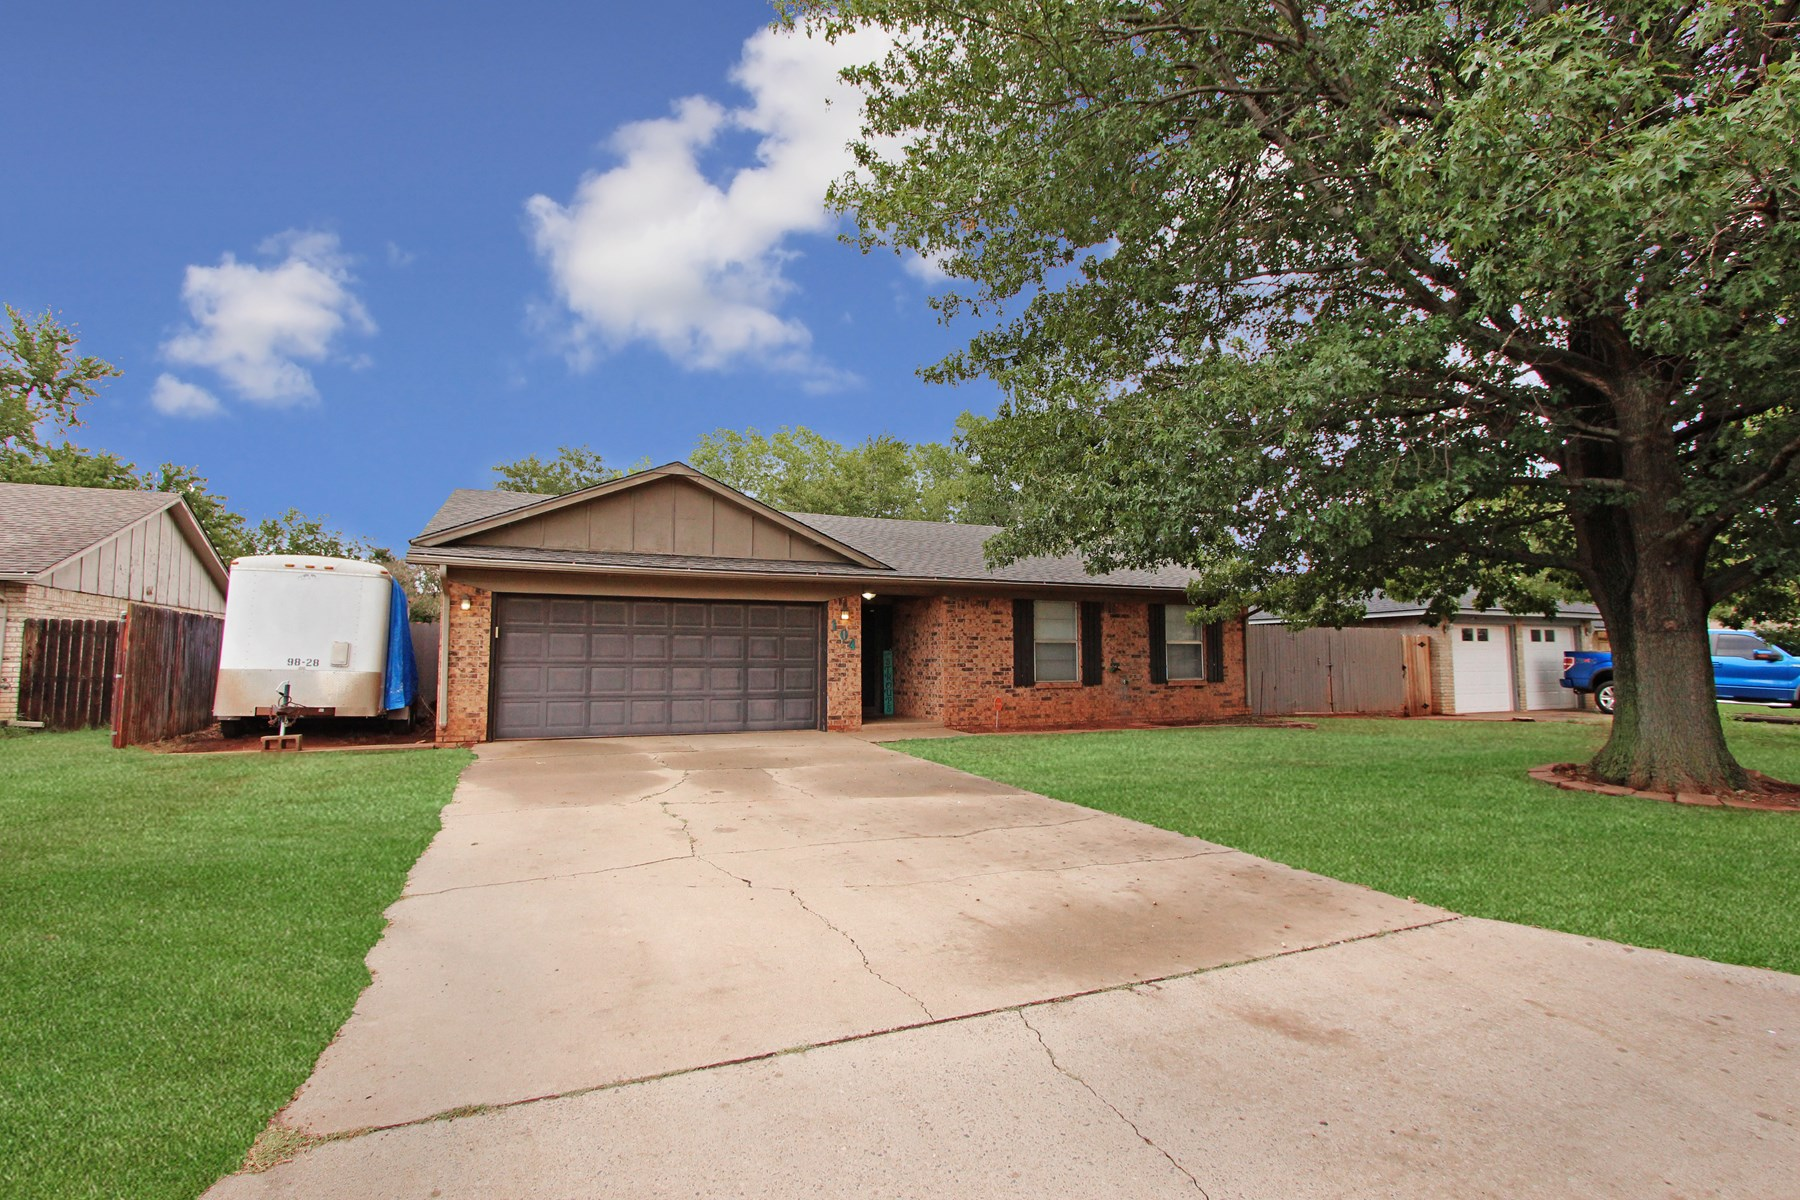 3 bed 2 bath home located in Elk City, OK